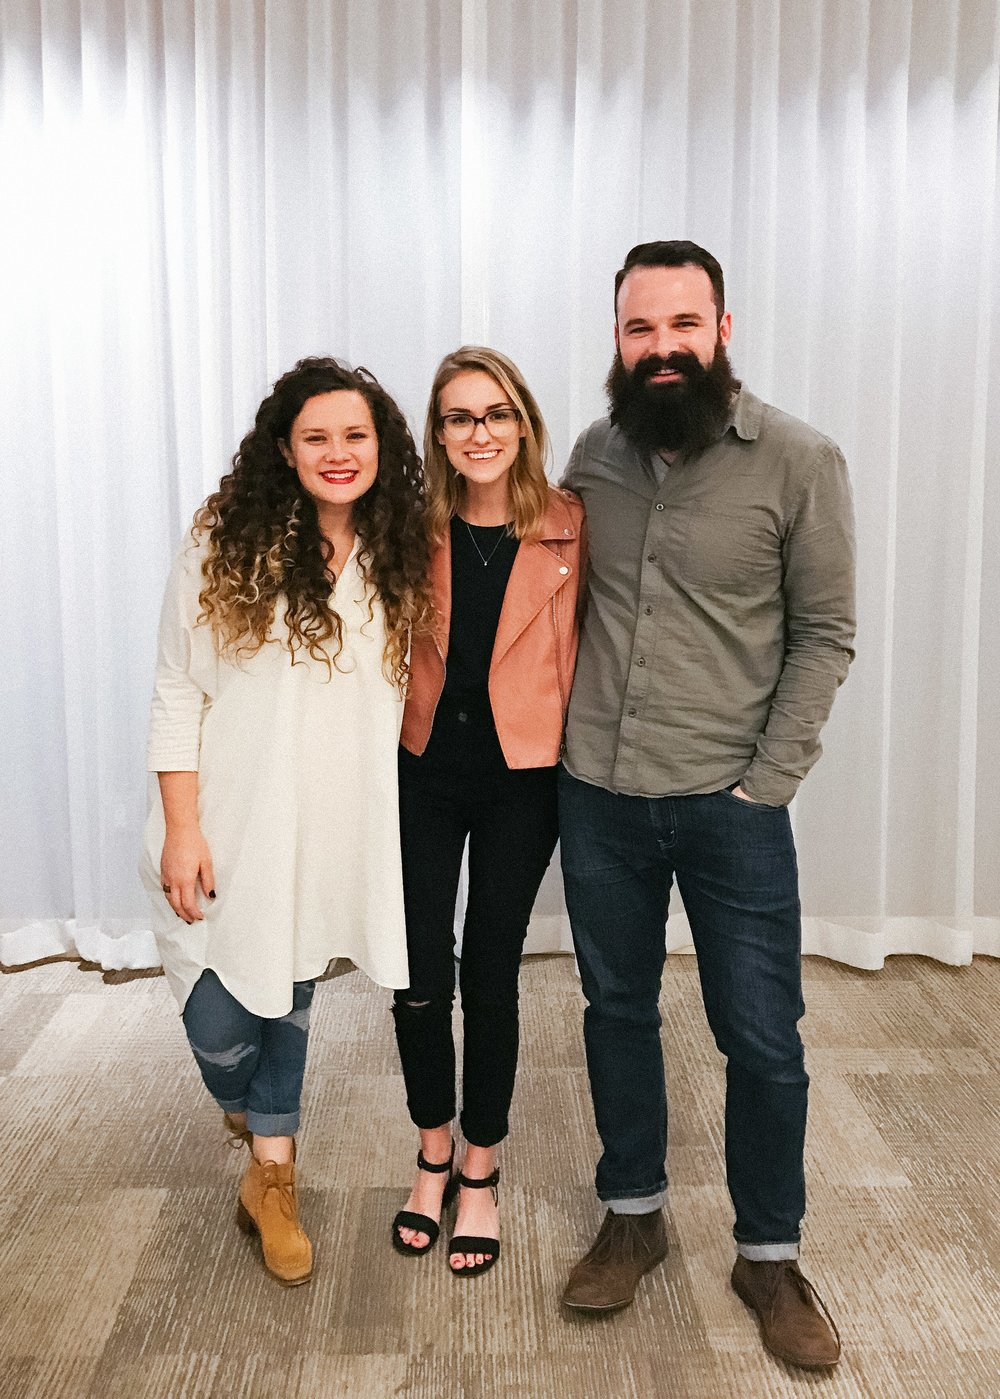 - Karissa,We loved having you as part of our team and we're so excited about what the future holds for you. Thank you for your friendship and your sweet spirit. We love ya girl!- Jake & Katie